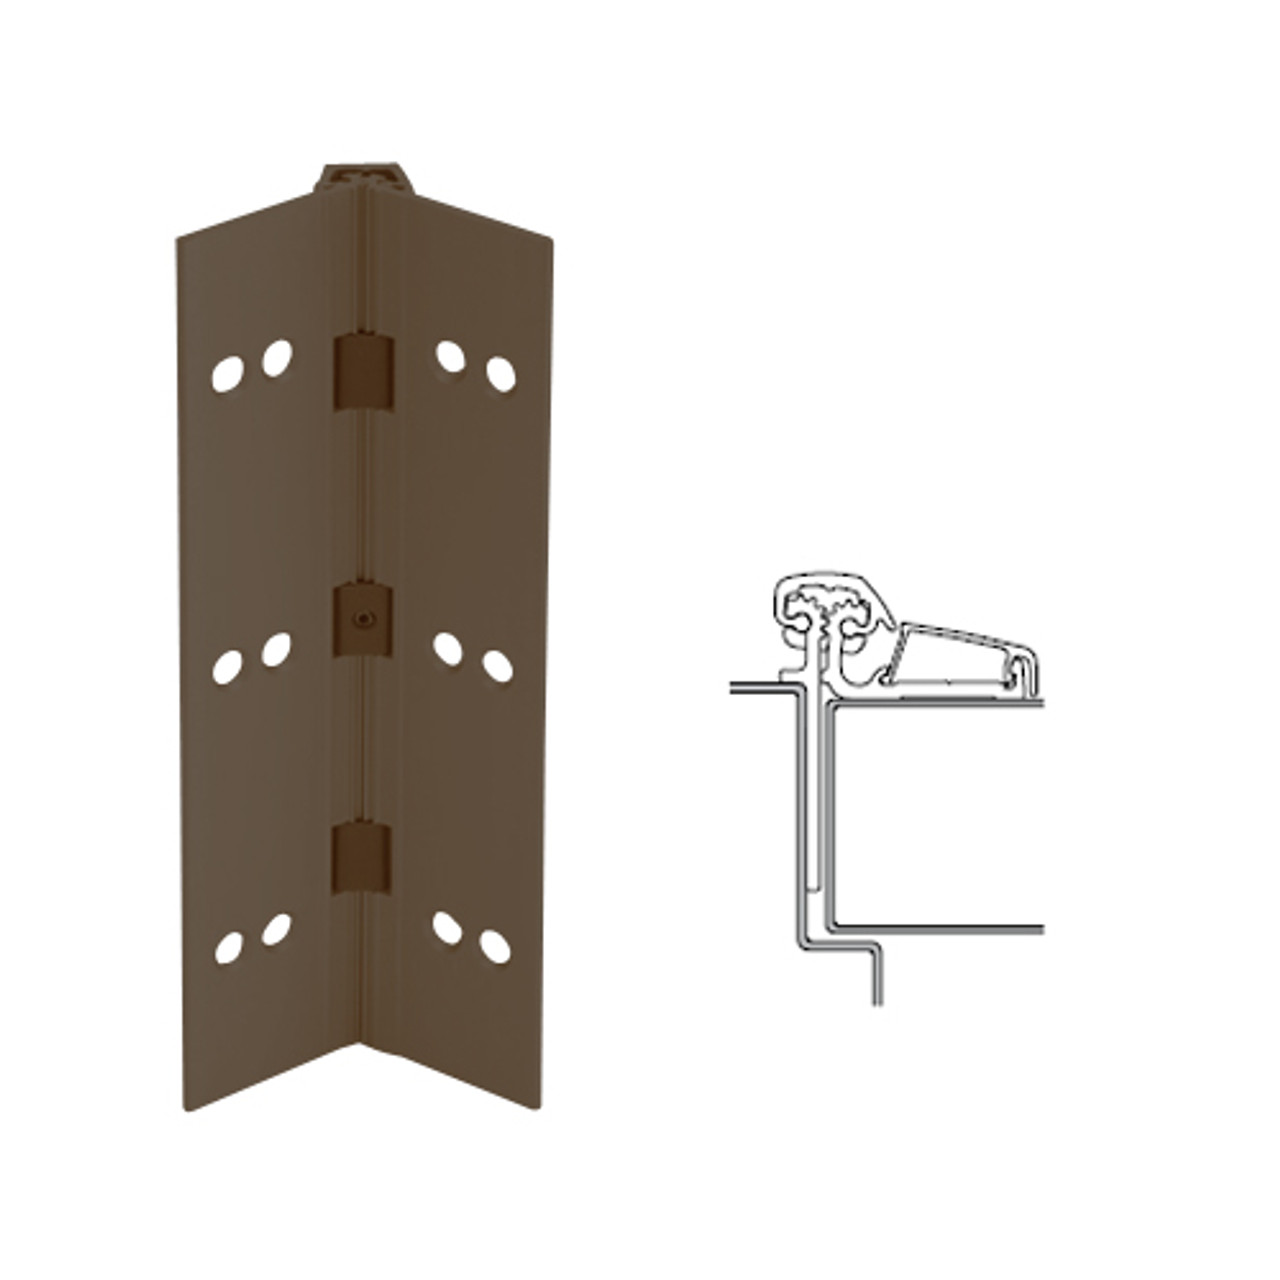 053XY-313AN-95-SECWDHM IVES Adjustable Half Surface Continuous Geared Hinges with Security Screws - Hex Pin Drive in Dark Bronze Anodized